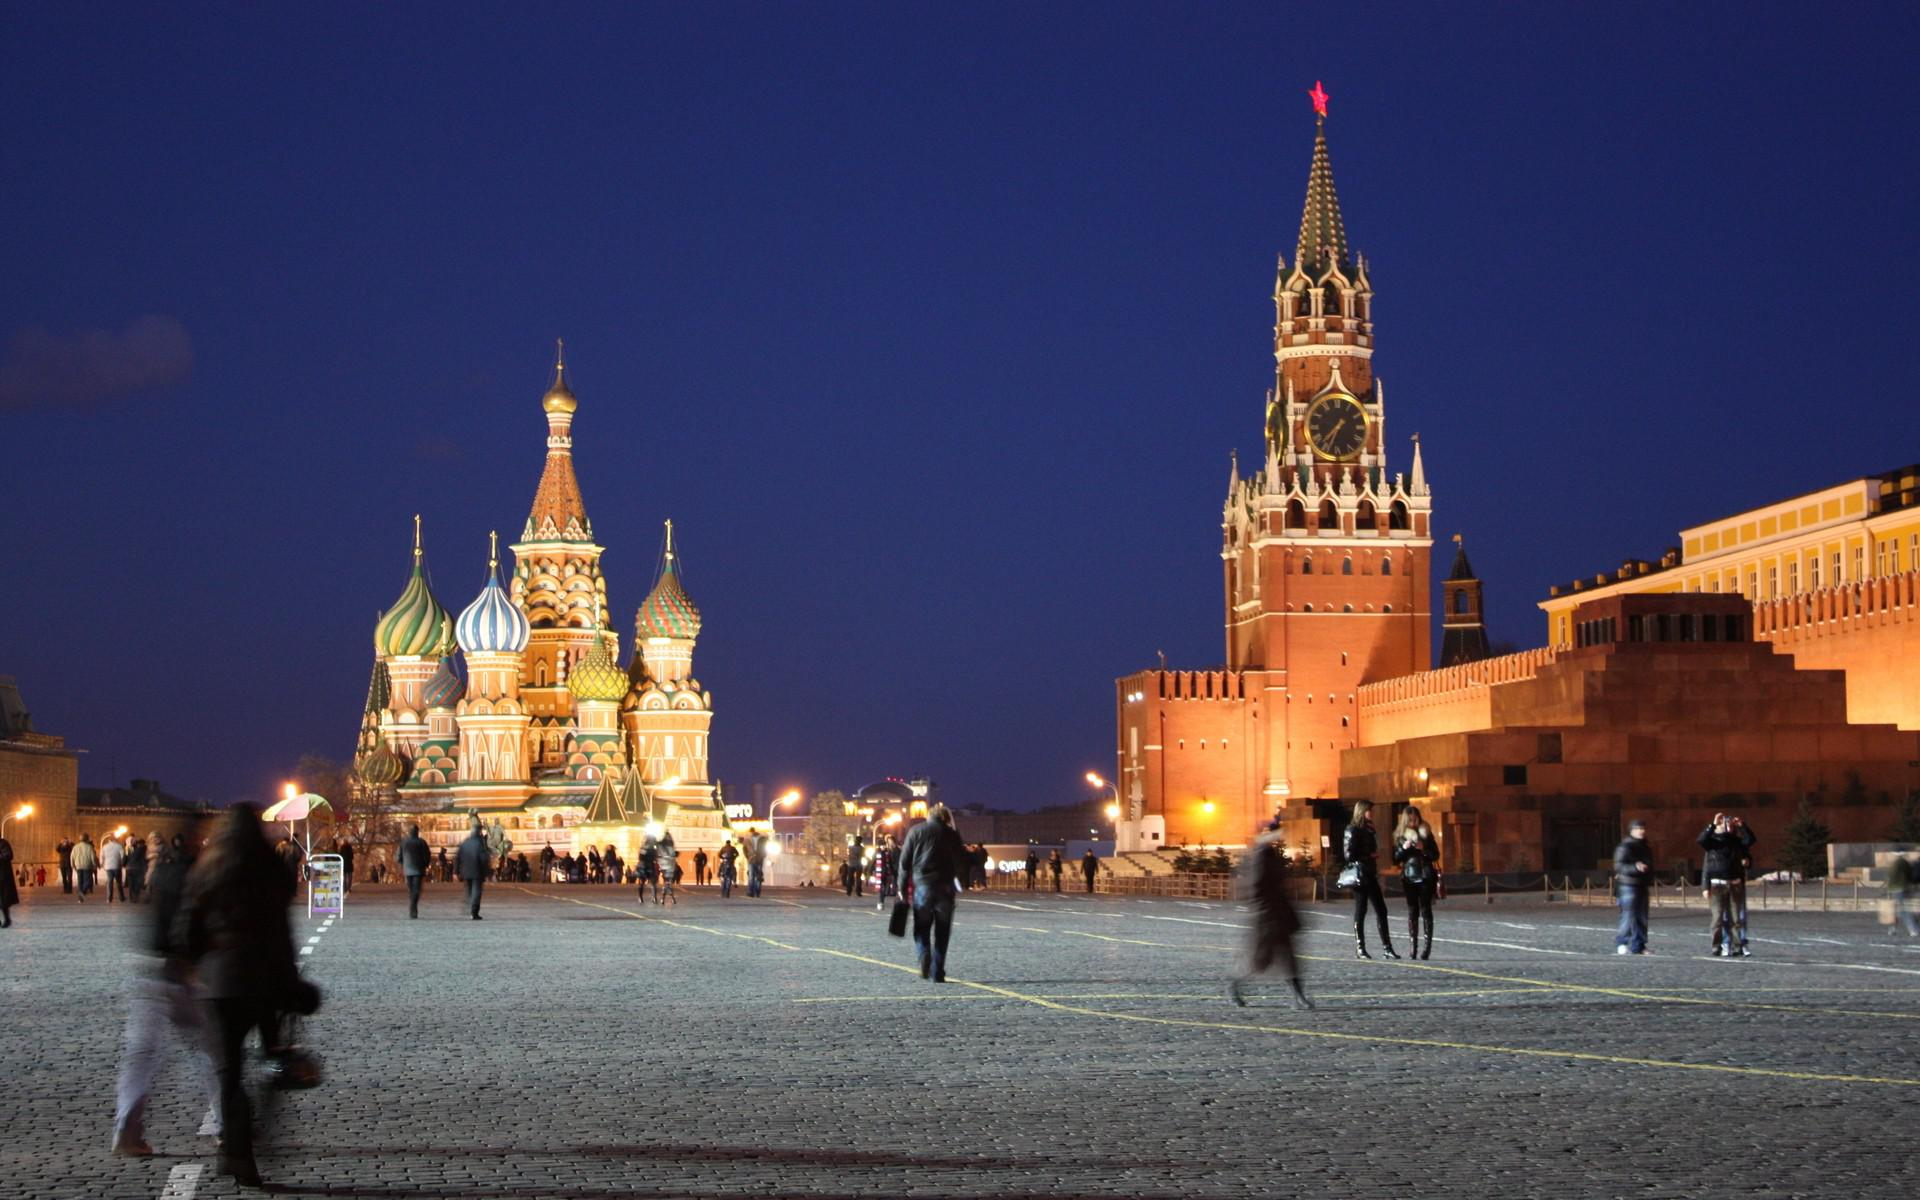 Microsoft Animated Wallpaper Hd Cityscapes Russia Moscow Kremlin Red Square Saint Basil